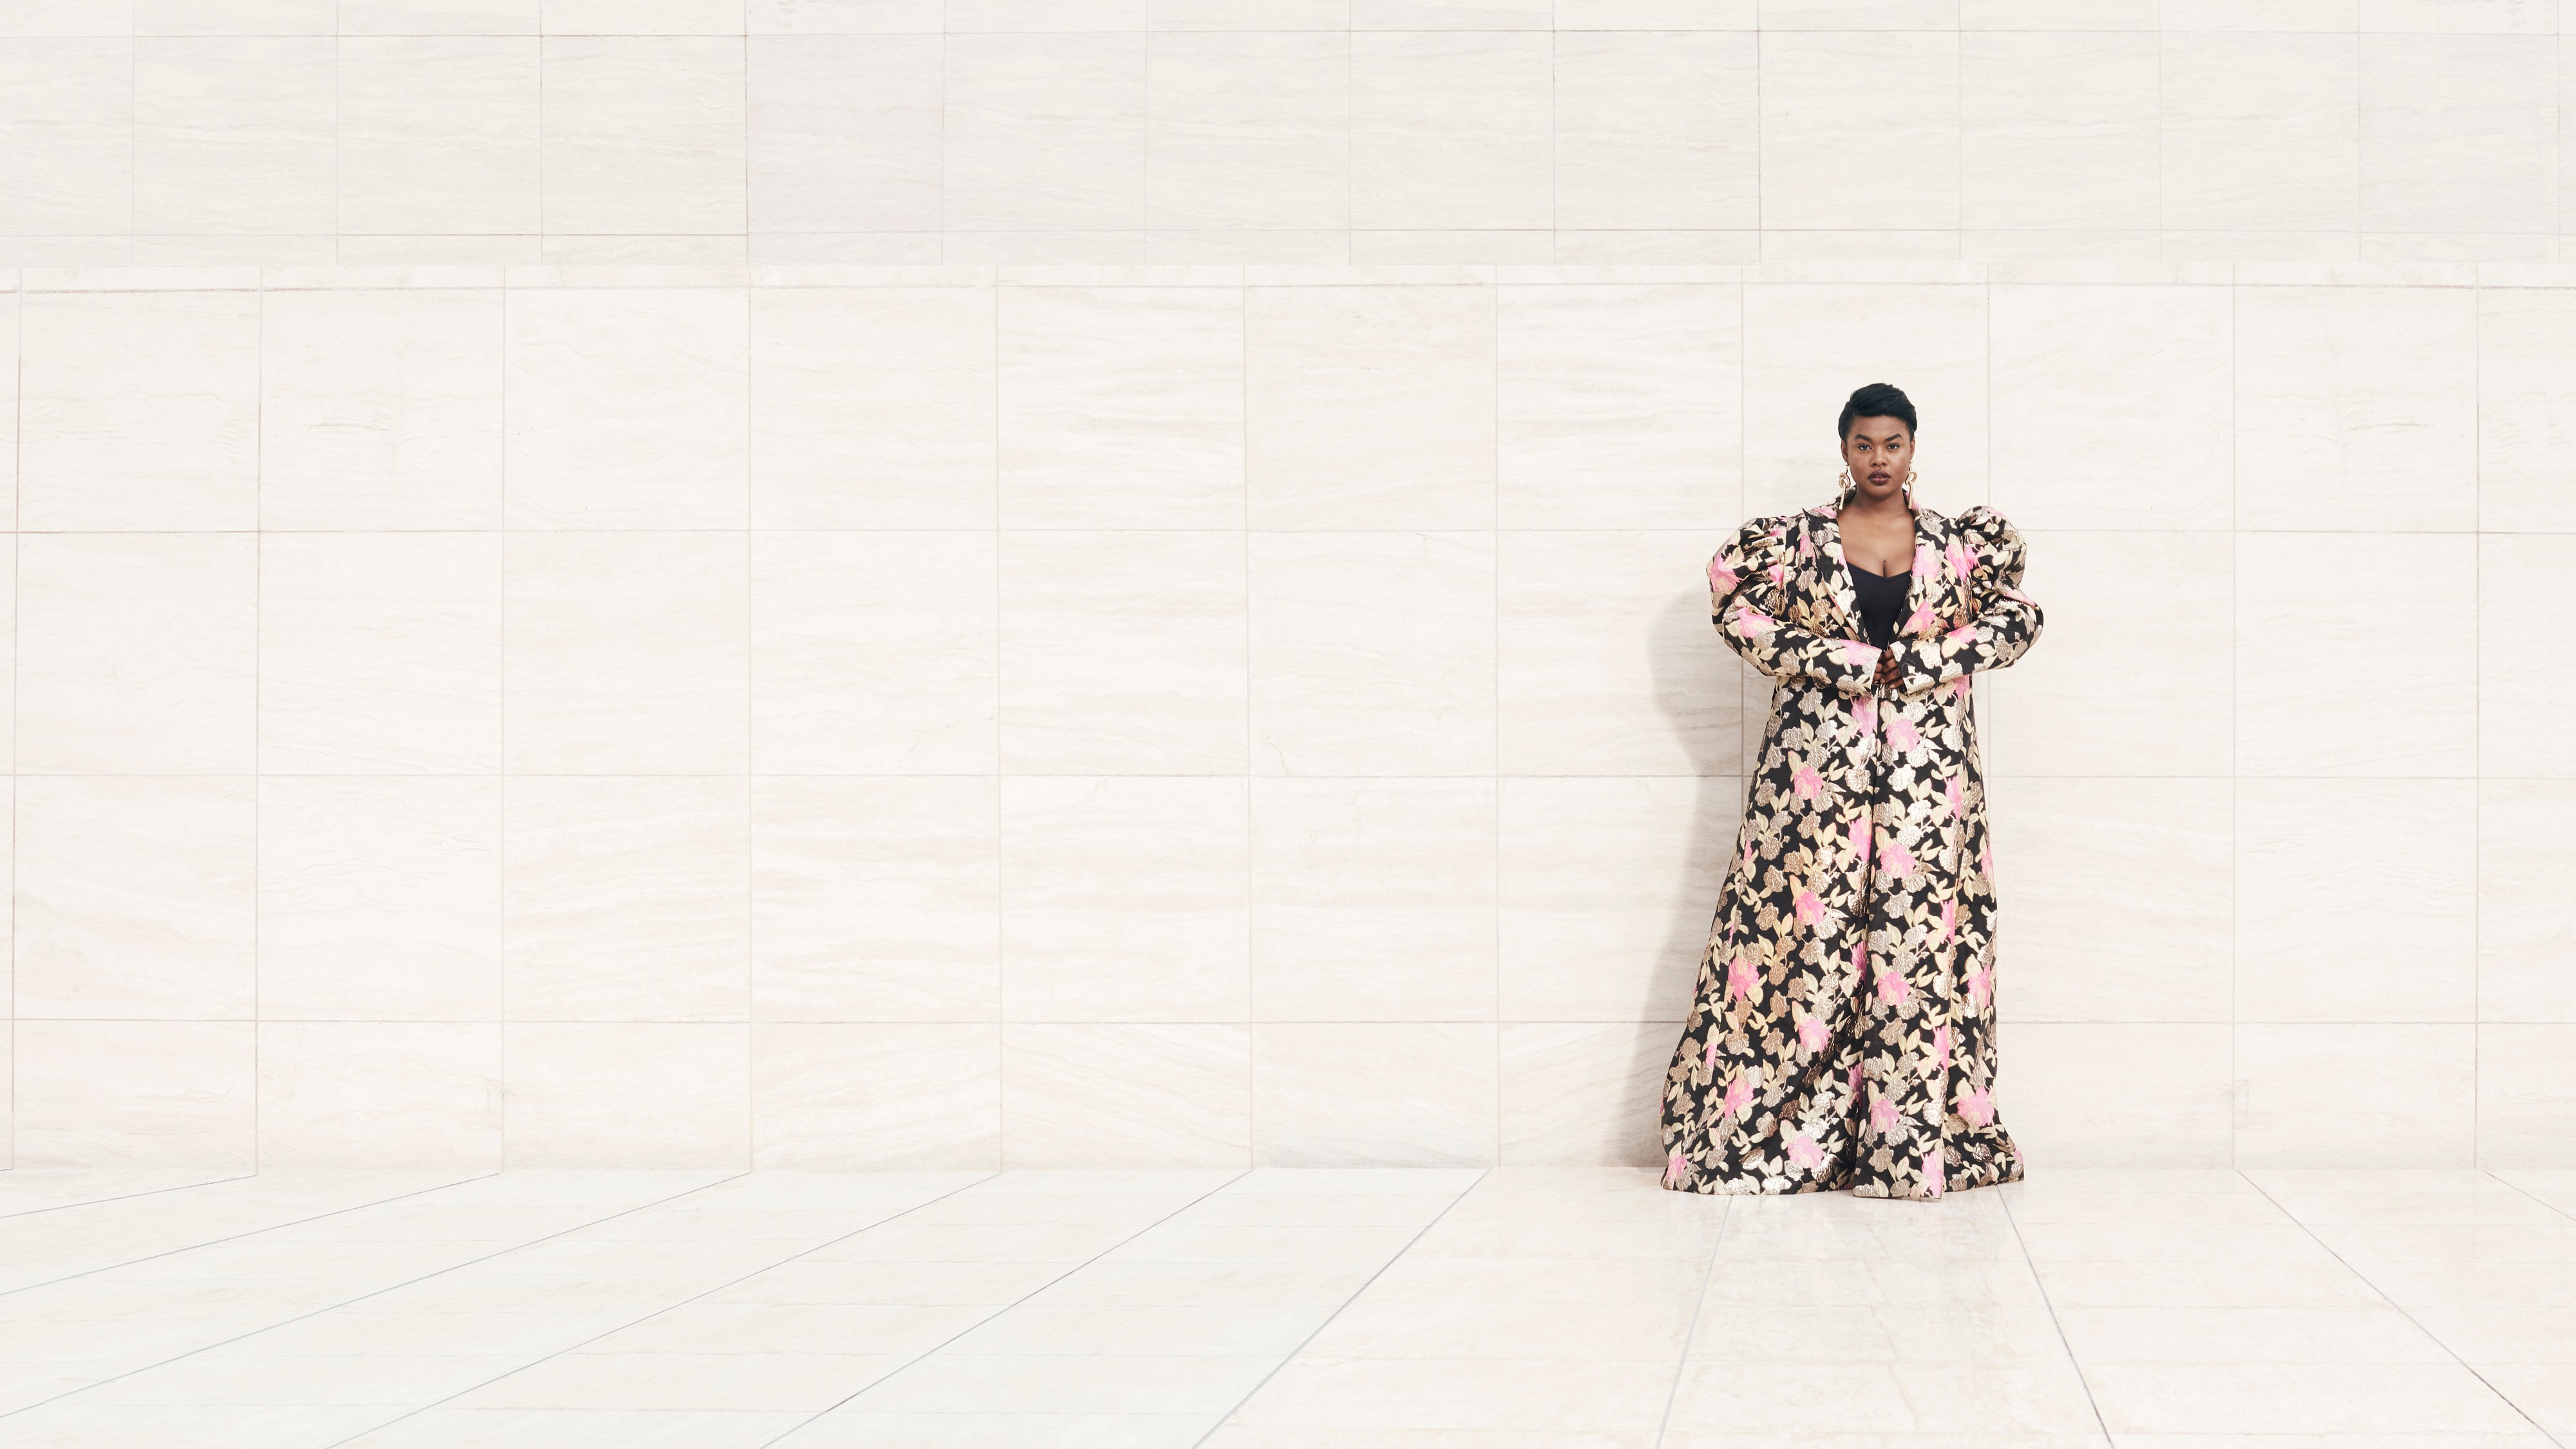 Model Precious Lee wearing floor length floral coat, Ad campaign. Art Direction by RoAndCo